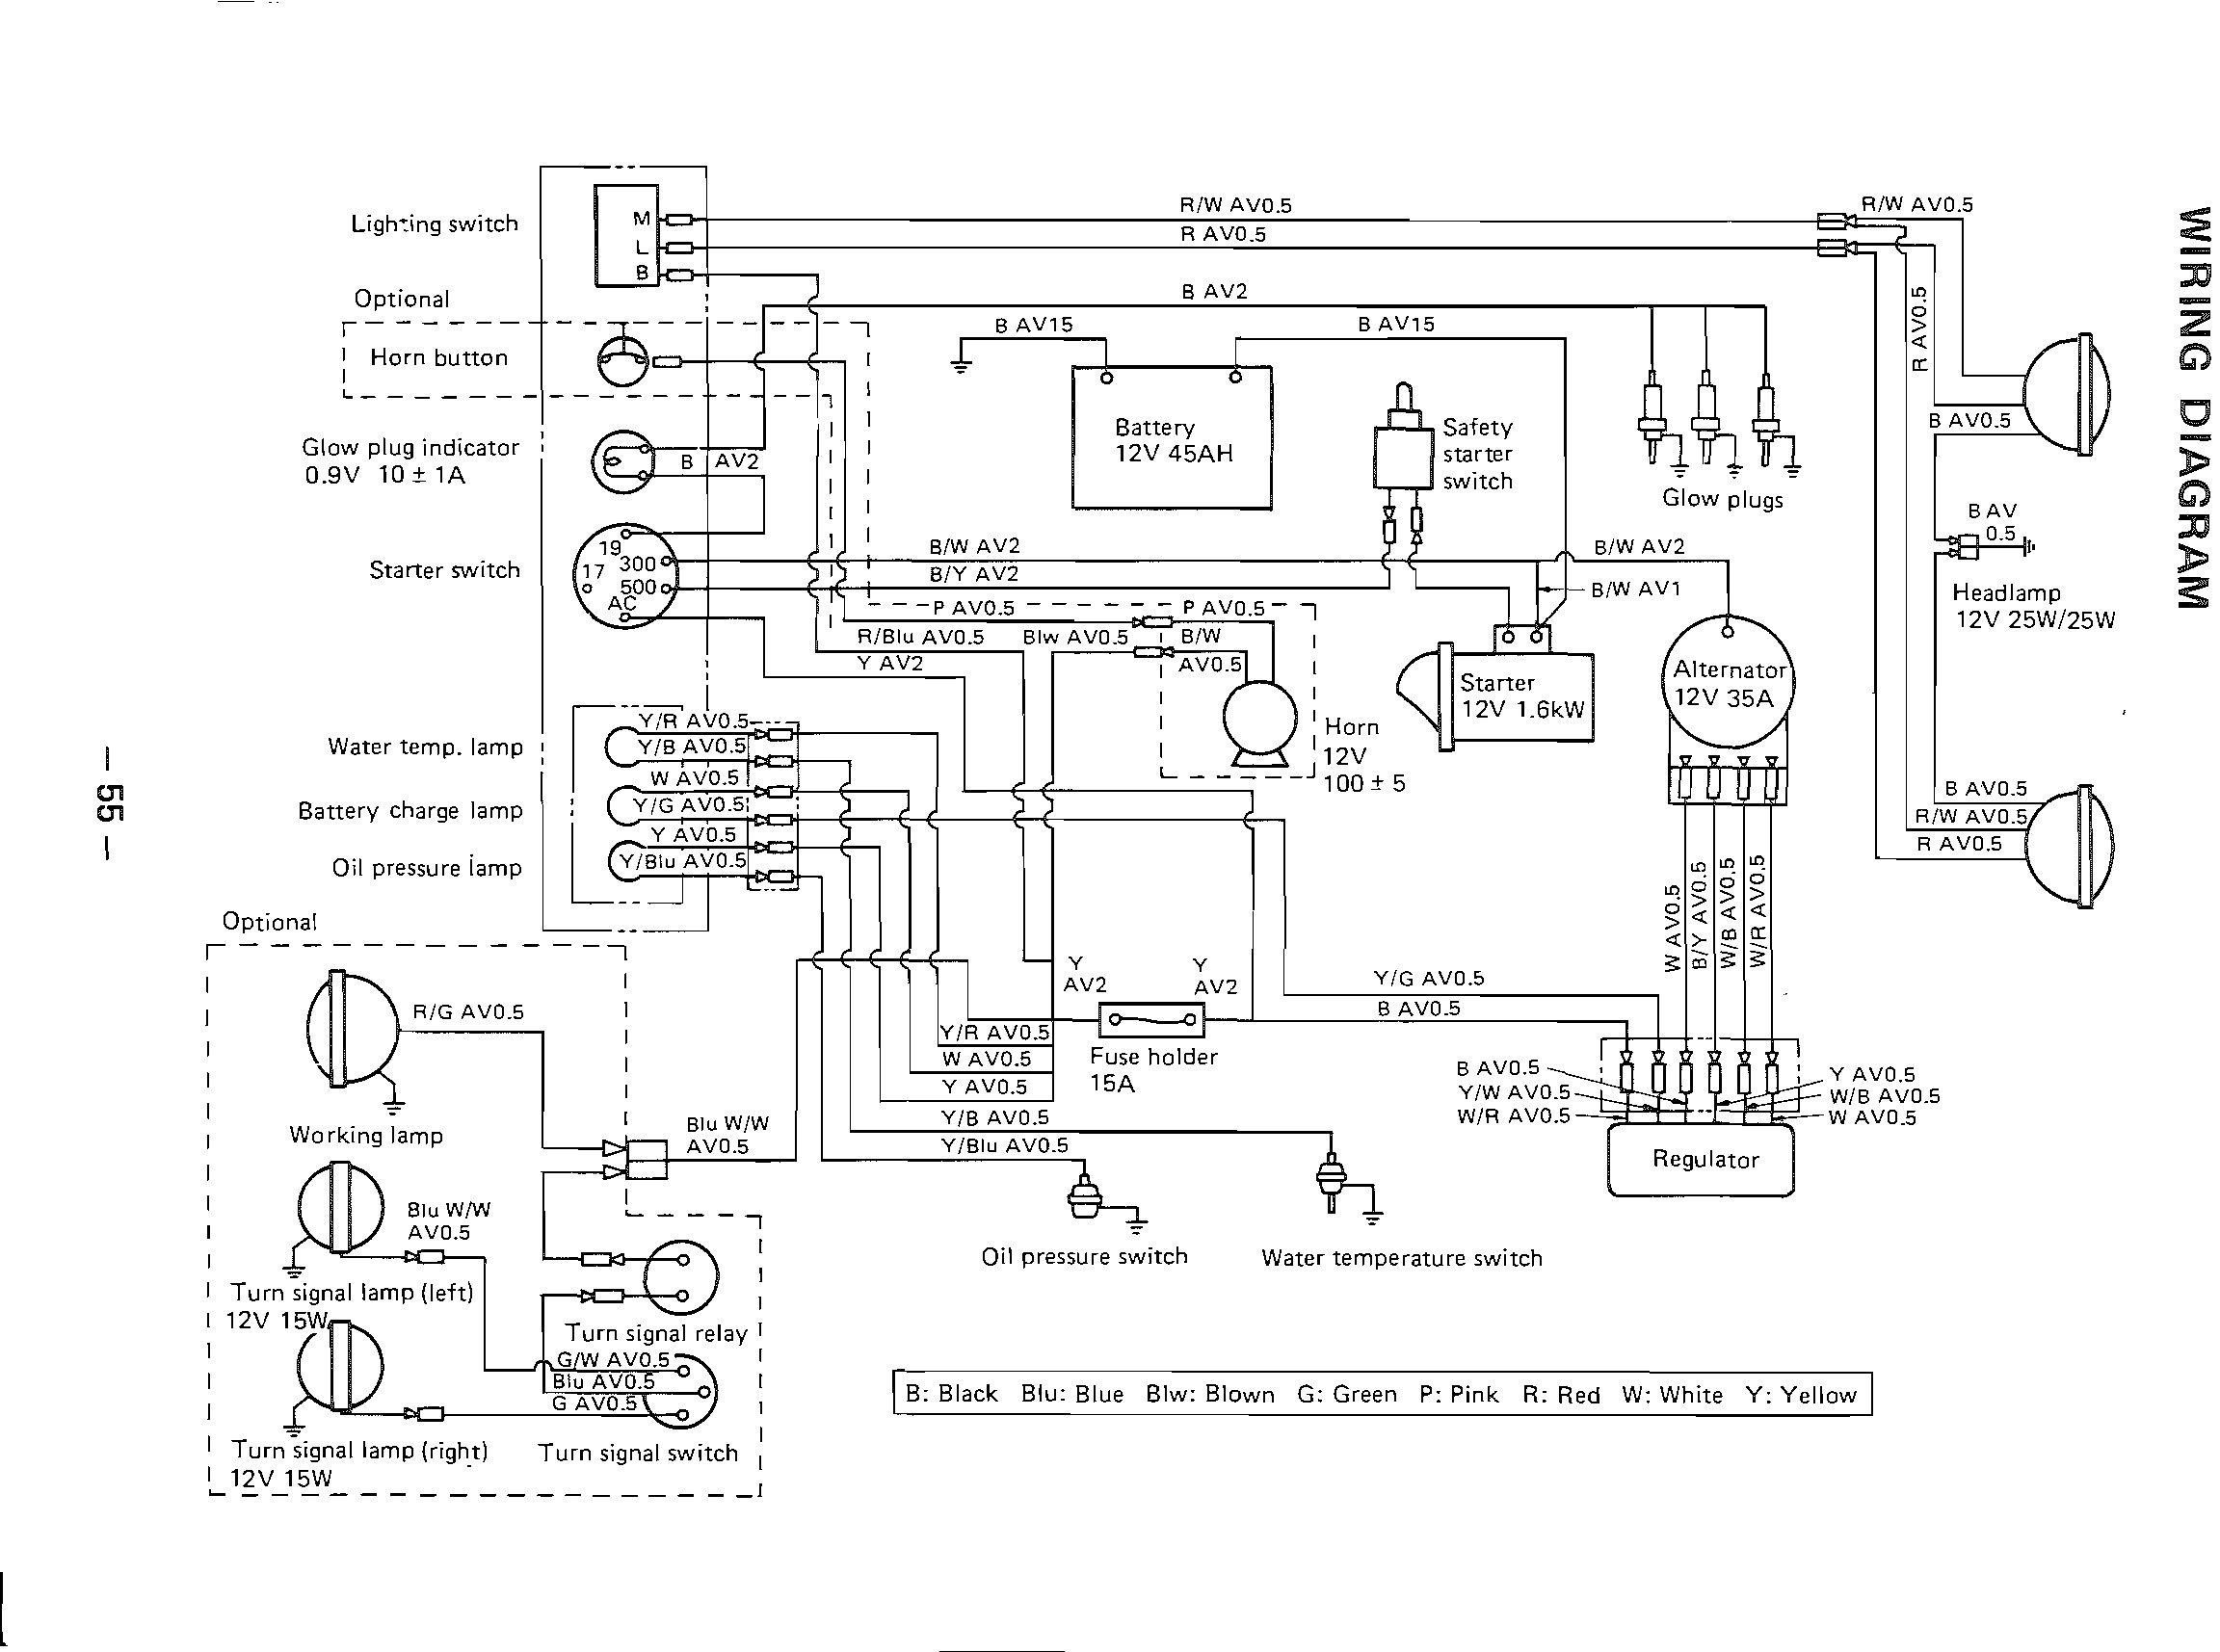 New Mf 135 Wiring Diagram In